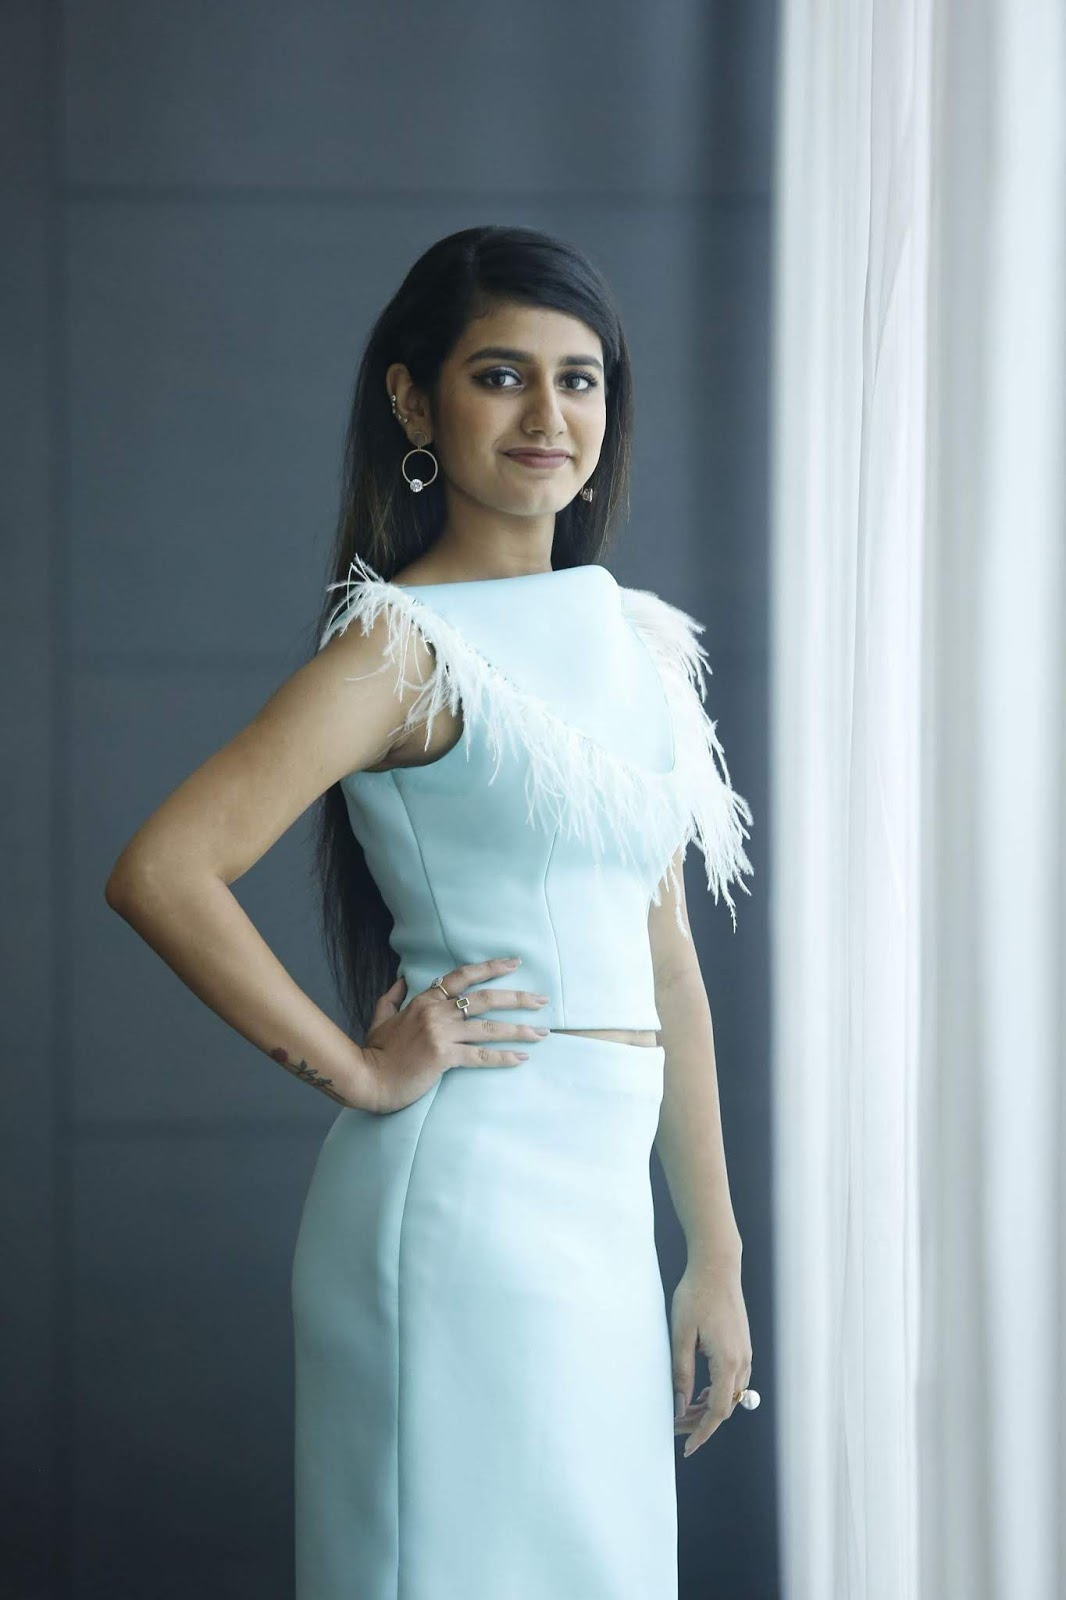 Actress Priya Prakash Varrier Photos At Lovers Day Movie Promotions Latest Indian Hollywood Movies Updates Branding Online And Actress Gallery